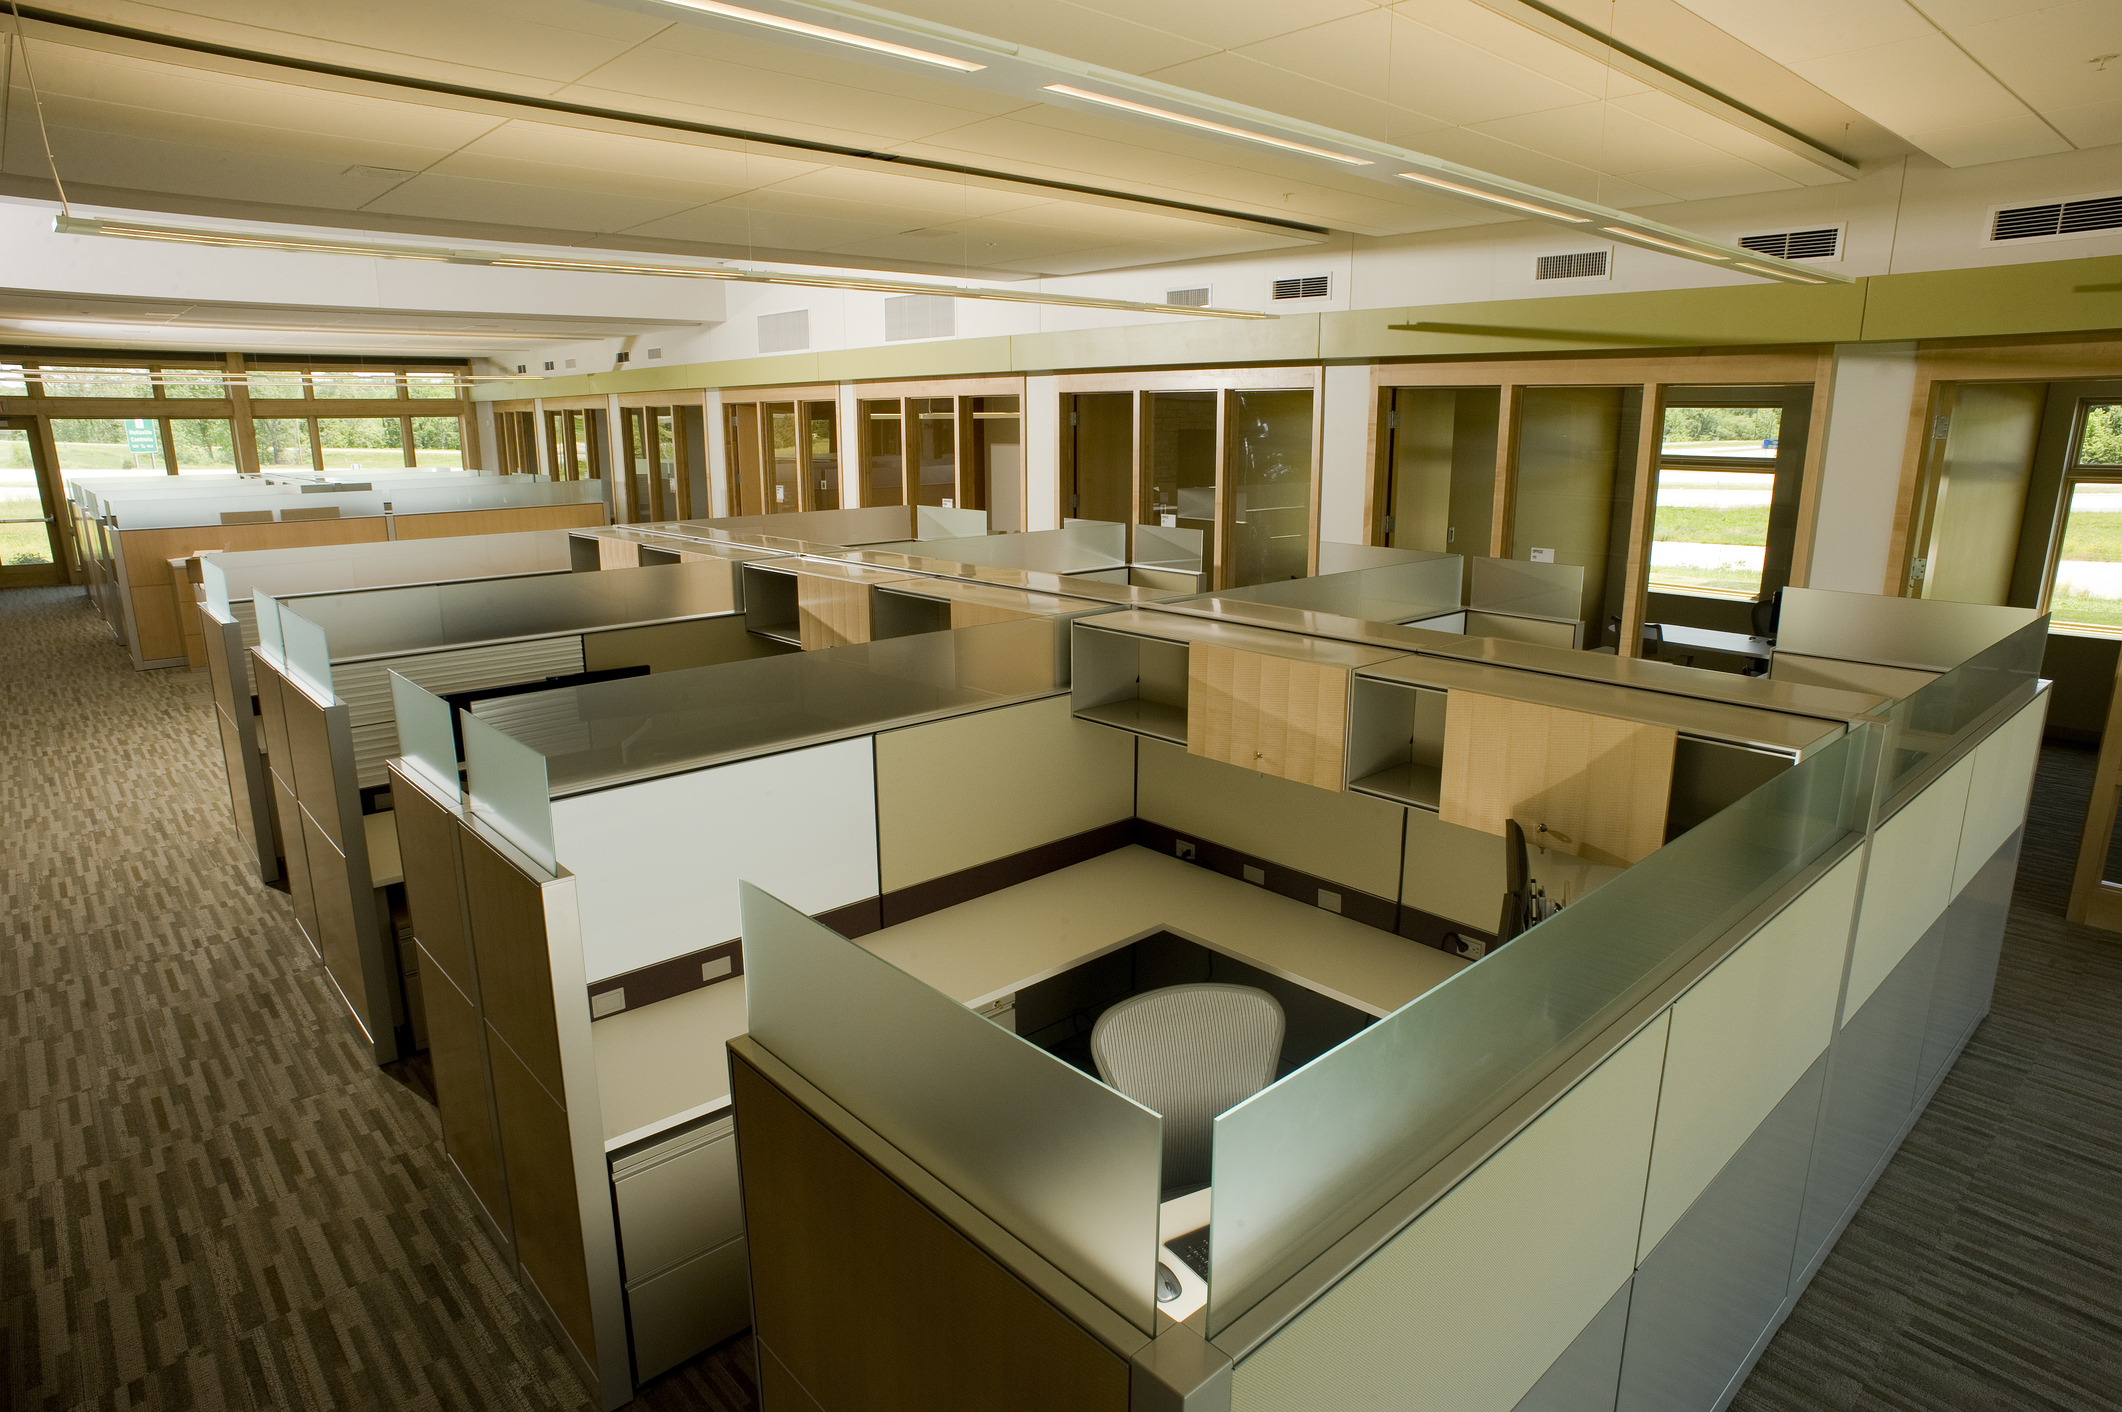 Industrial Office Cubicles : Case for commercial office furniture « corporate space